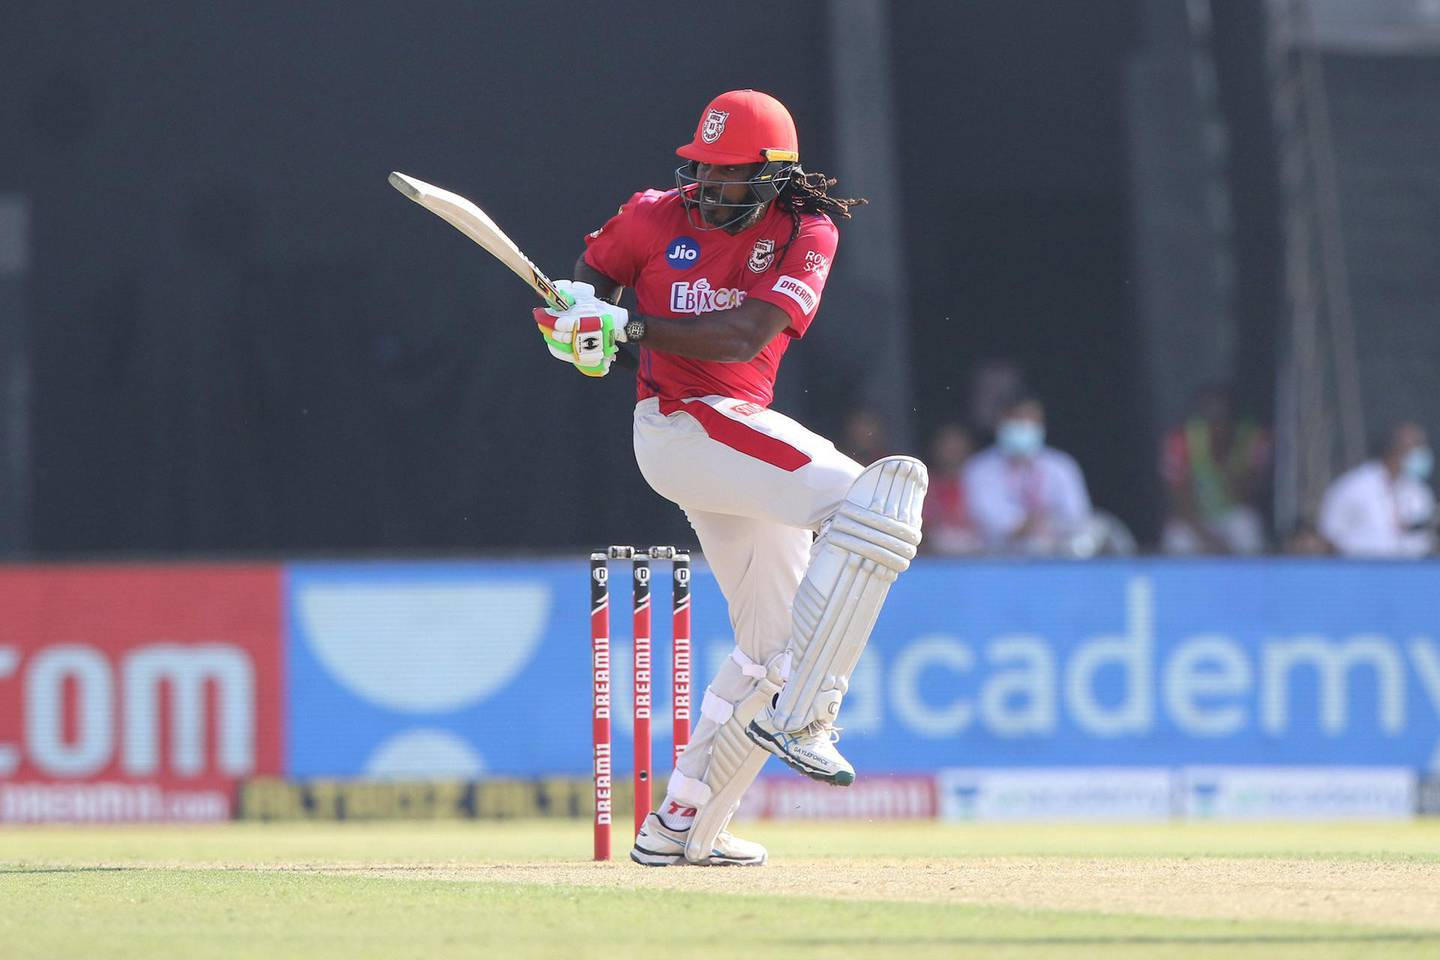 Chris Gayle of Kings XI Punjab plays a shot during match 53 of season 13 of the Dream 11 Indian Premier League (IPL) between the Chennai Super Kings and the Kings XI Punjab at the Sheikh Zayed Stadium, Abu Dhabi  in the United Arab Emirates on the 1st November 2020.  Photo by: Pankaj Nangia  / Sportzpics for BCCI